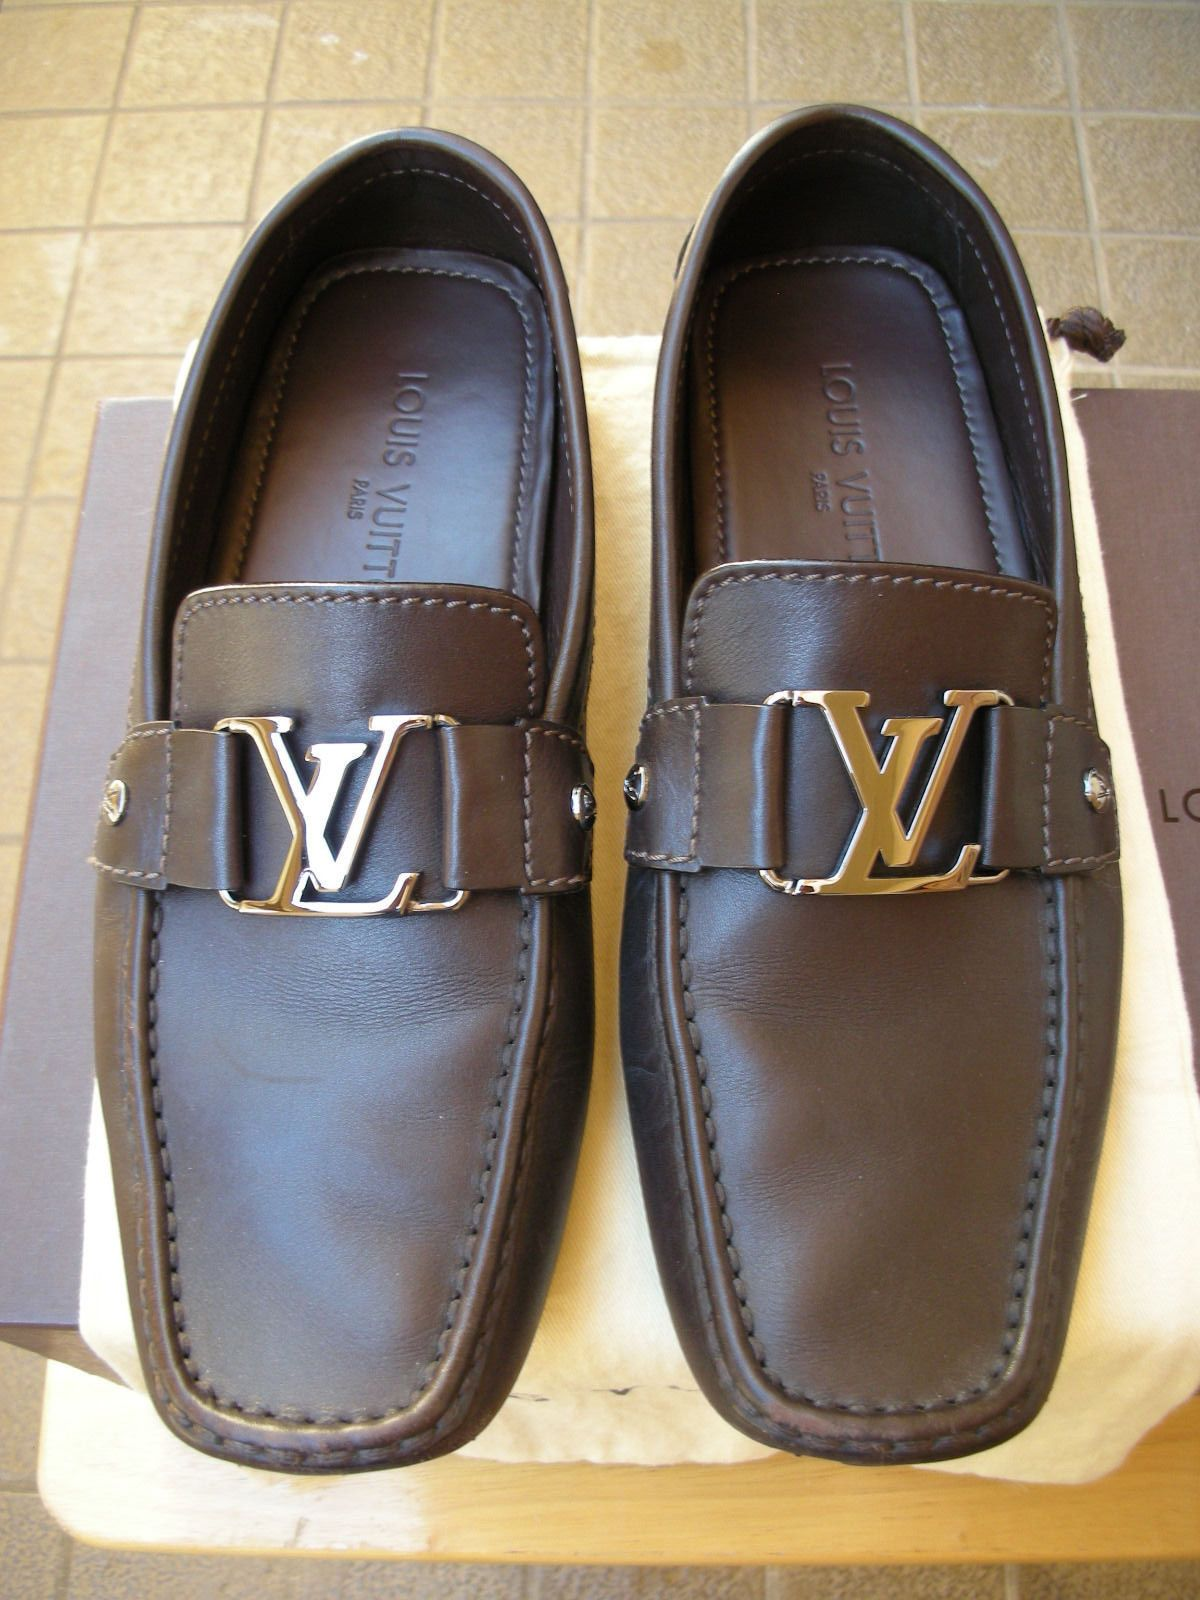 eea5a763a07f MEN S LOUIS VUITTON MONTE CARLO LOAFER SHOES BROWN LEATHER SIZE (8.5  US)(7.5 LV)